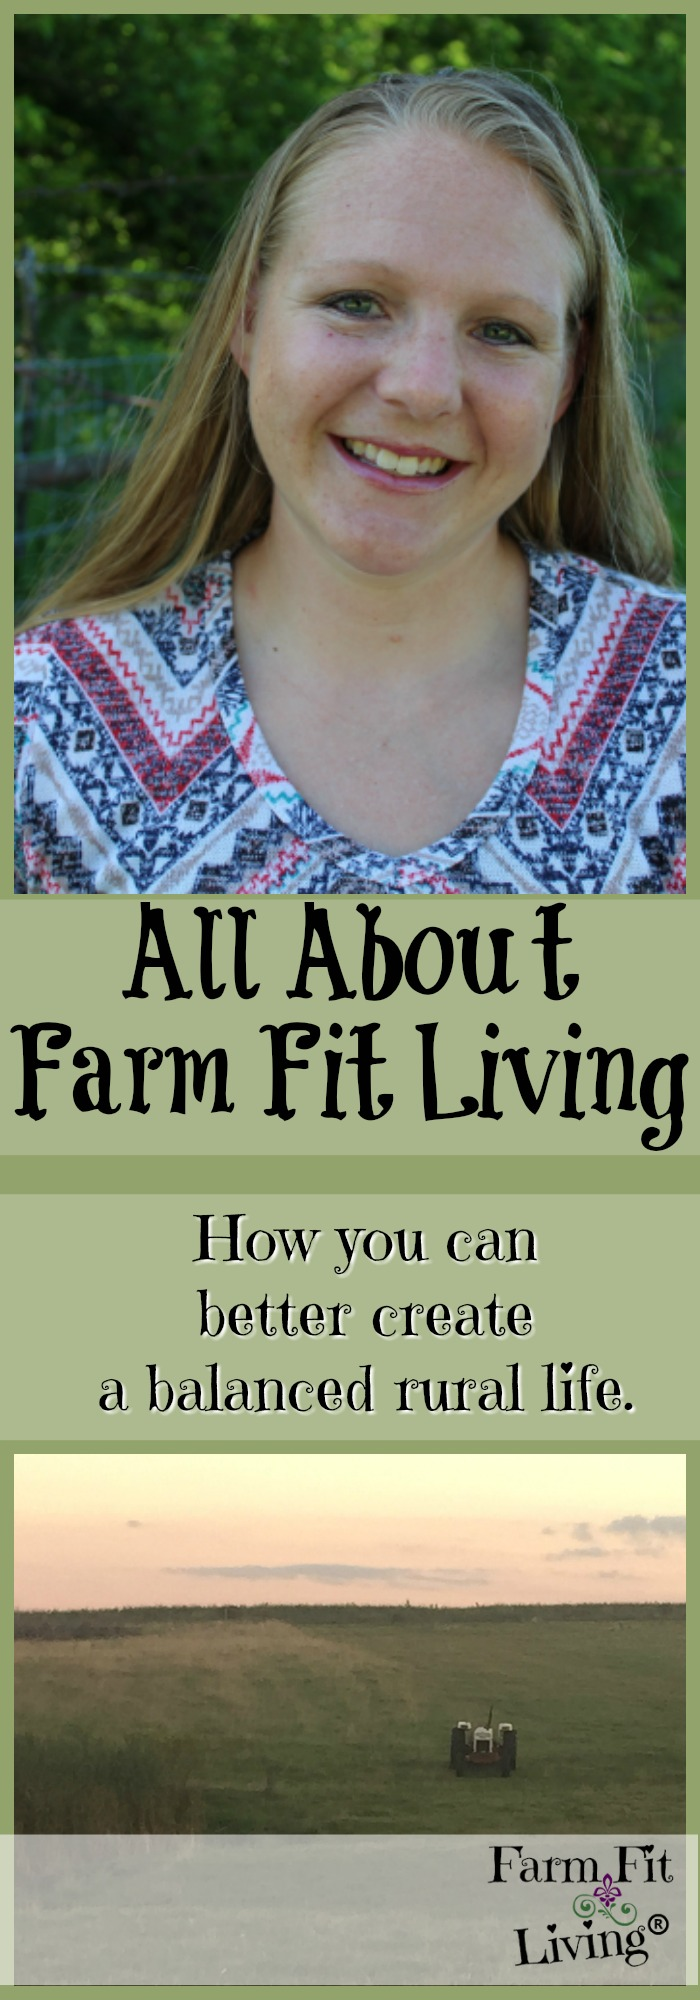 Creating a balanced life ain't easy. Learn more about Farm Fit Living, your guide to rural life, health, business and happiness.